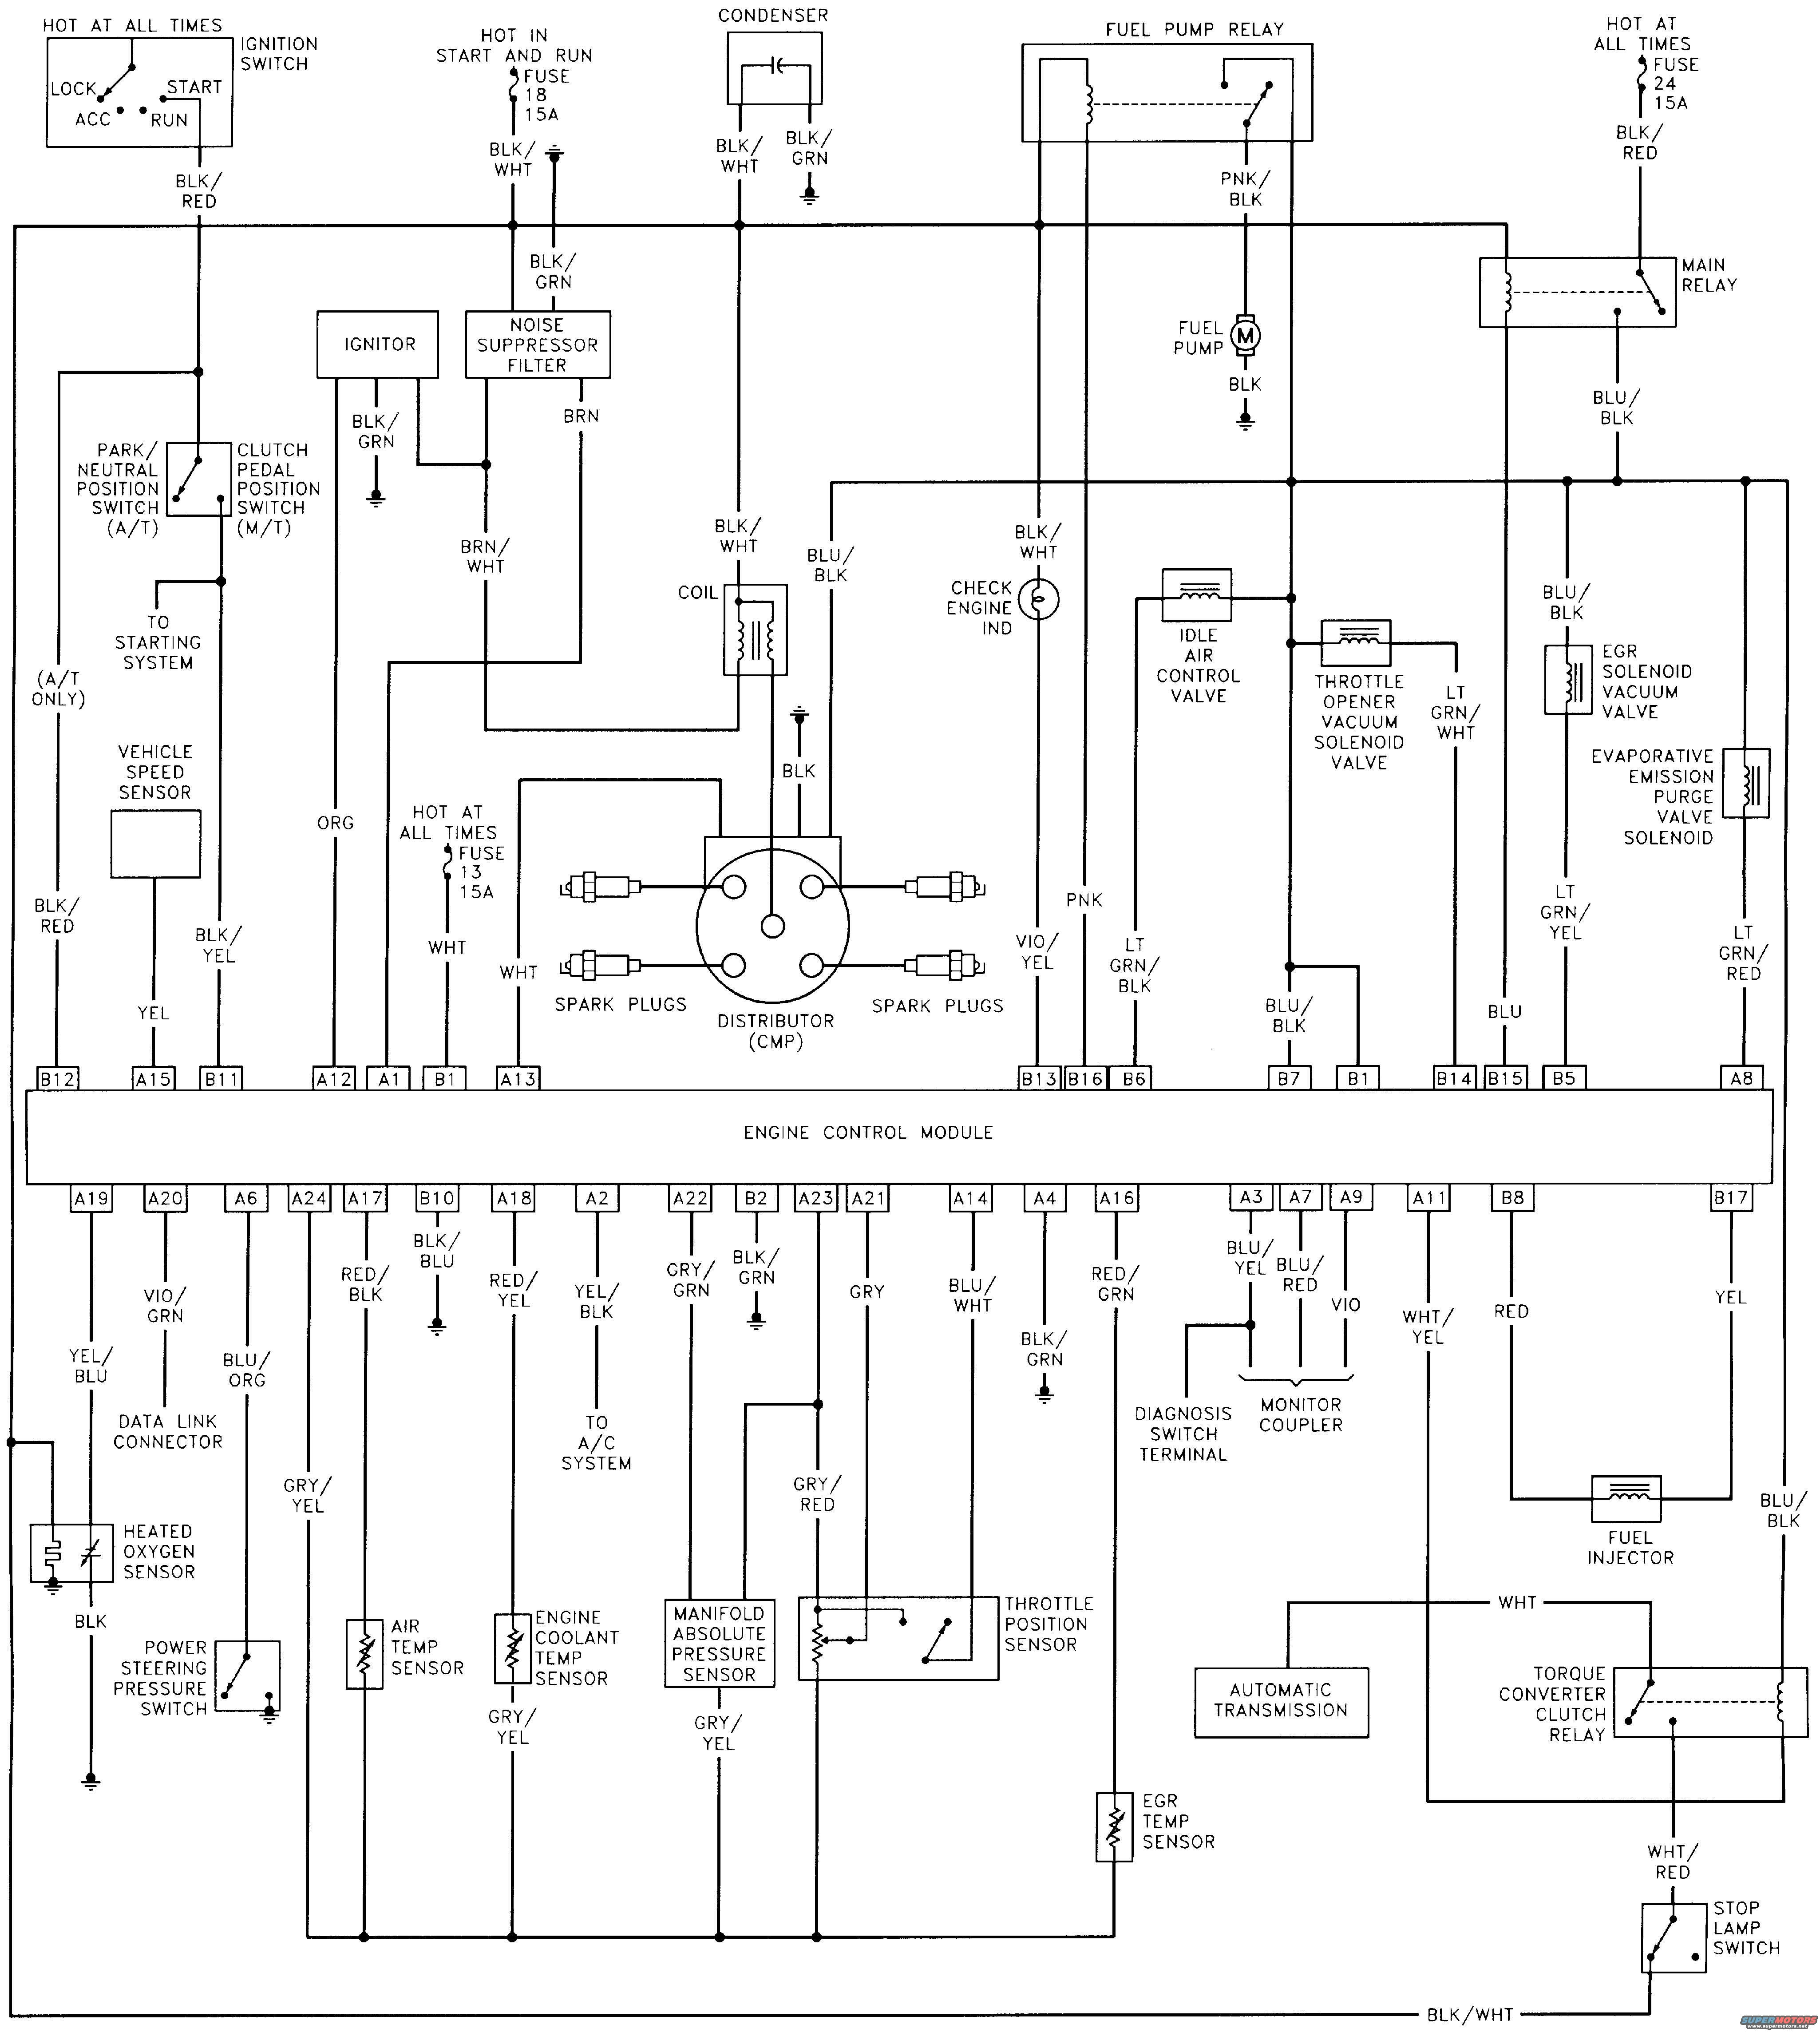 Daewoo Lano Engine Wiring Diagram